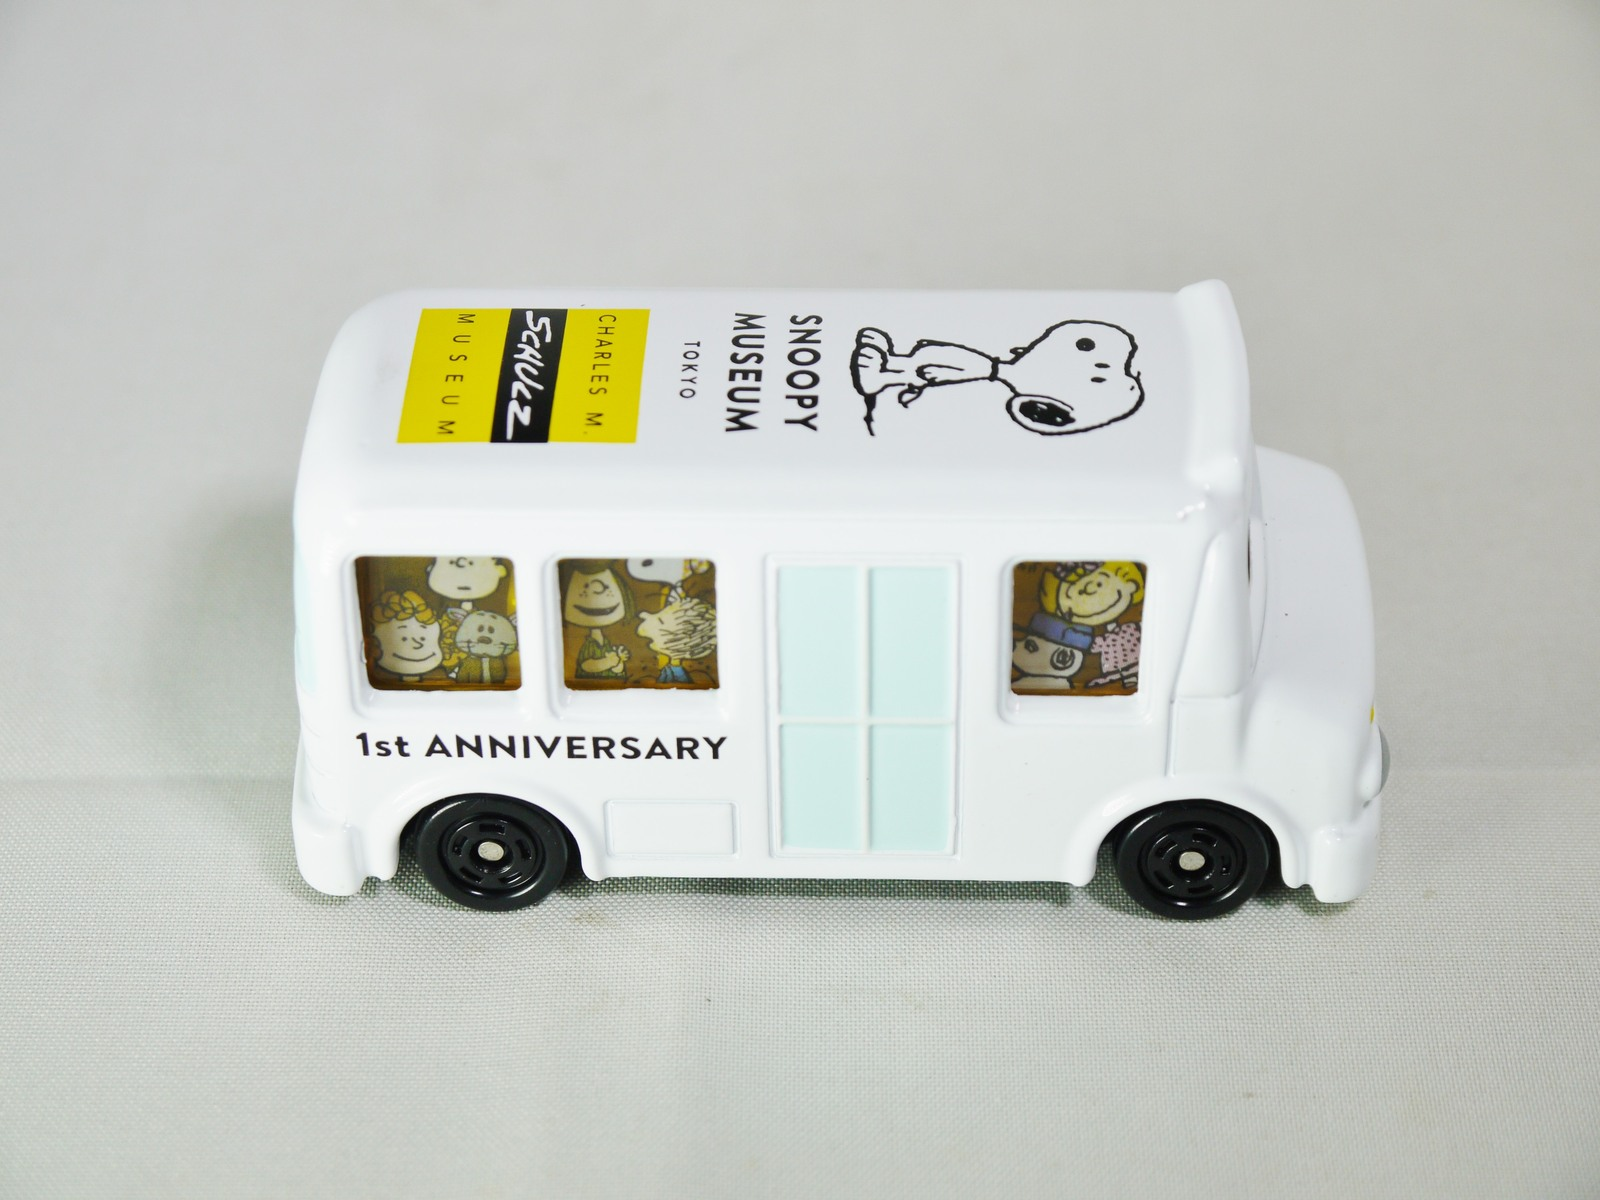 Takara Tomy Tomica Dream Snoopy Museum Tokyo And 50 Similar Items Diecast Truck No77 Hino Profia Original 1st Anniversary Die Cast Bus